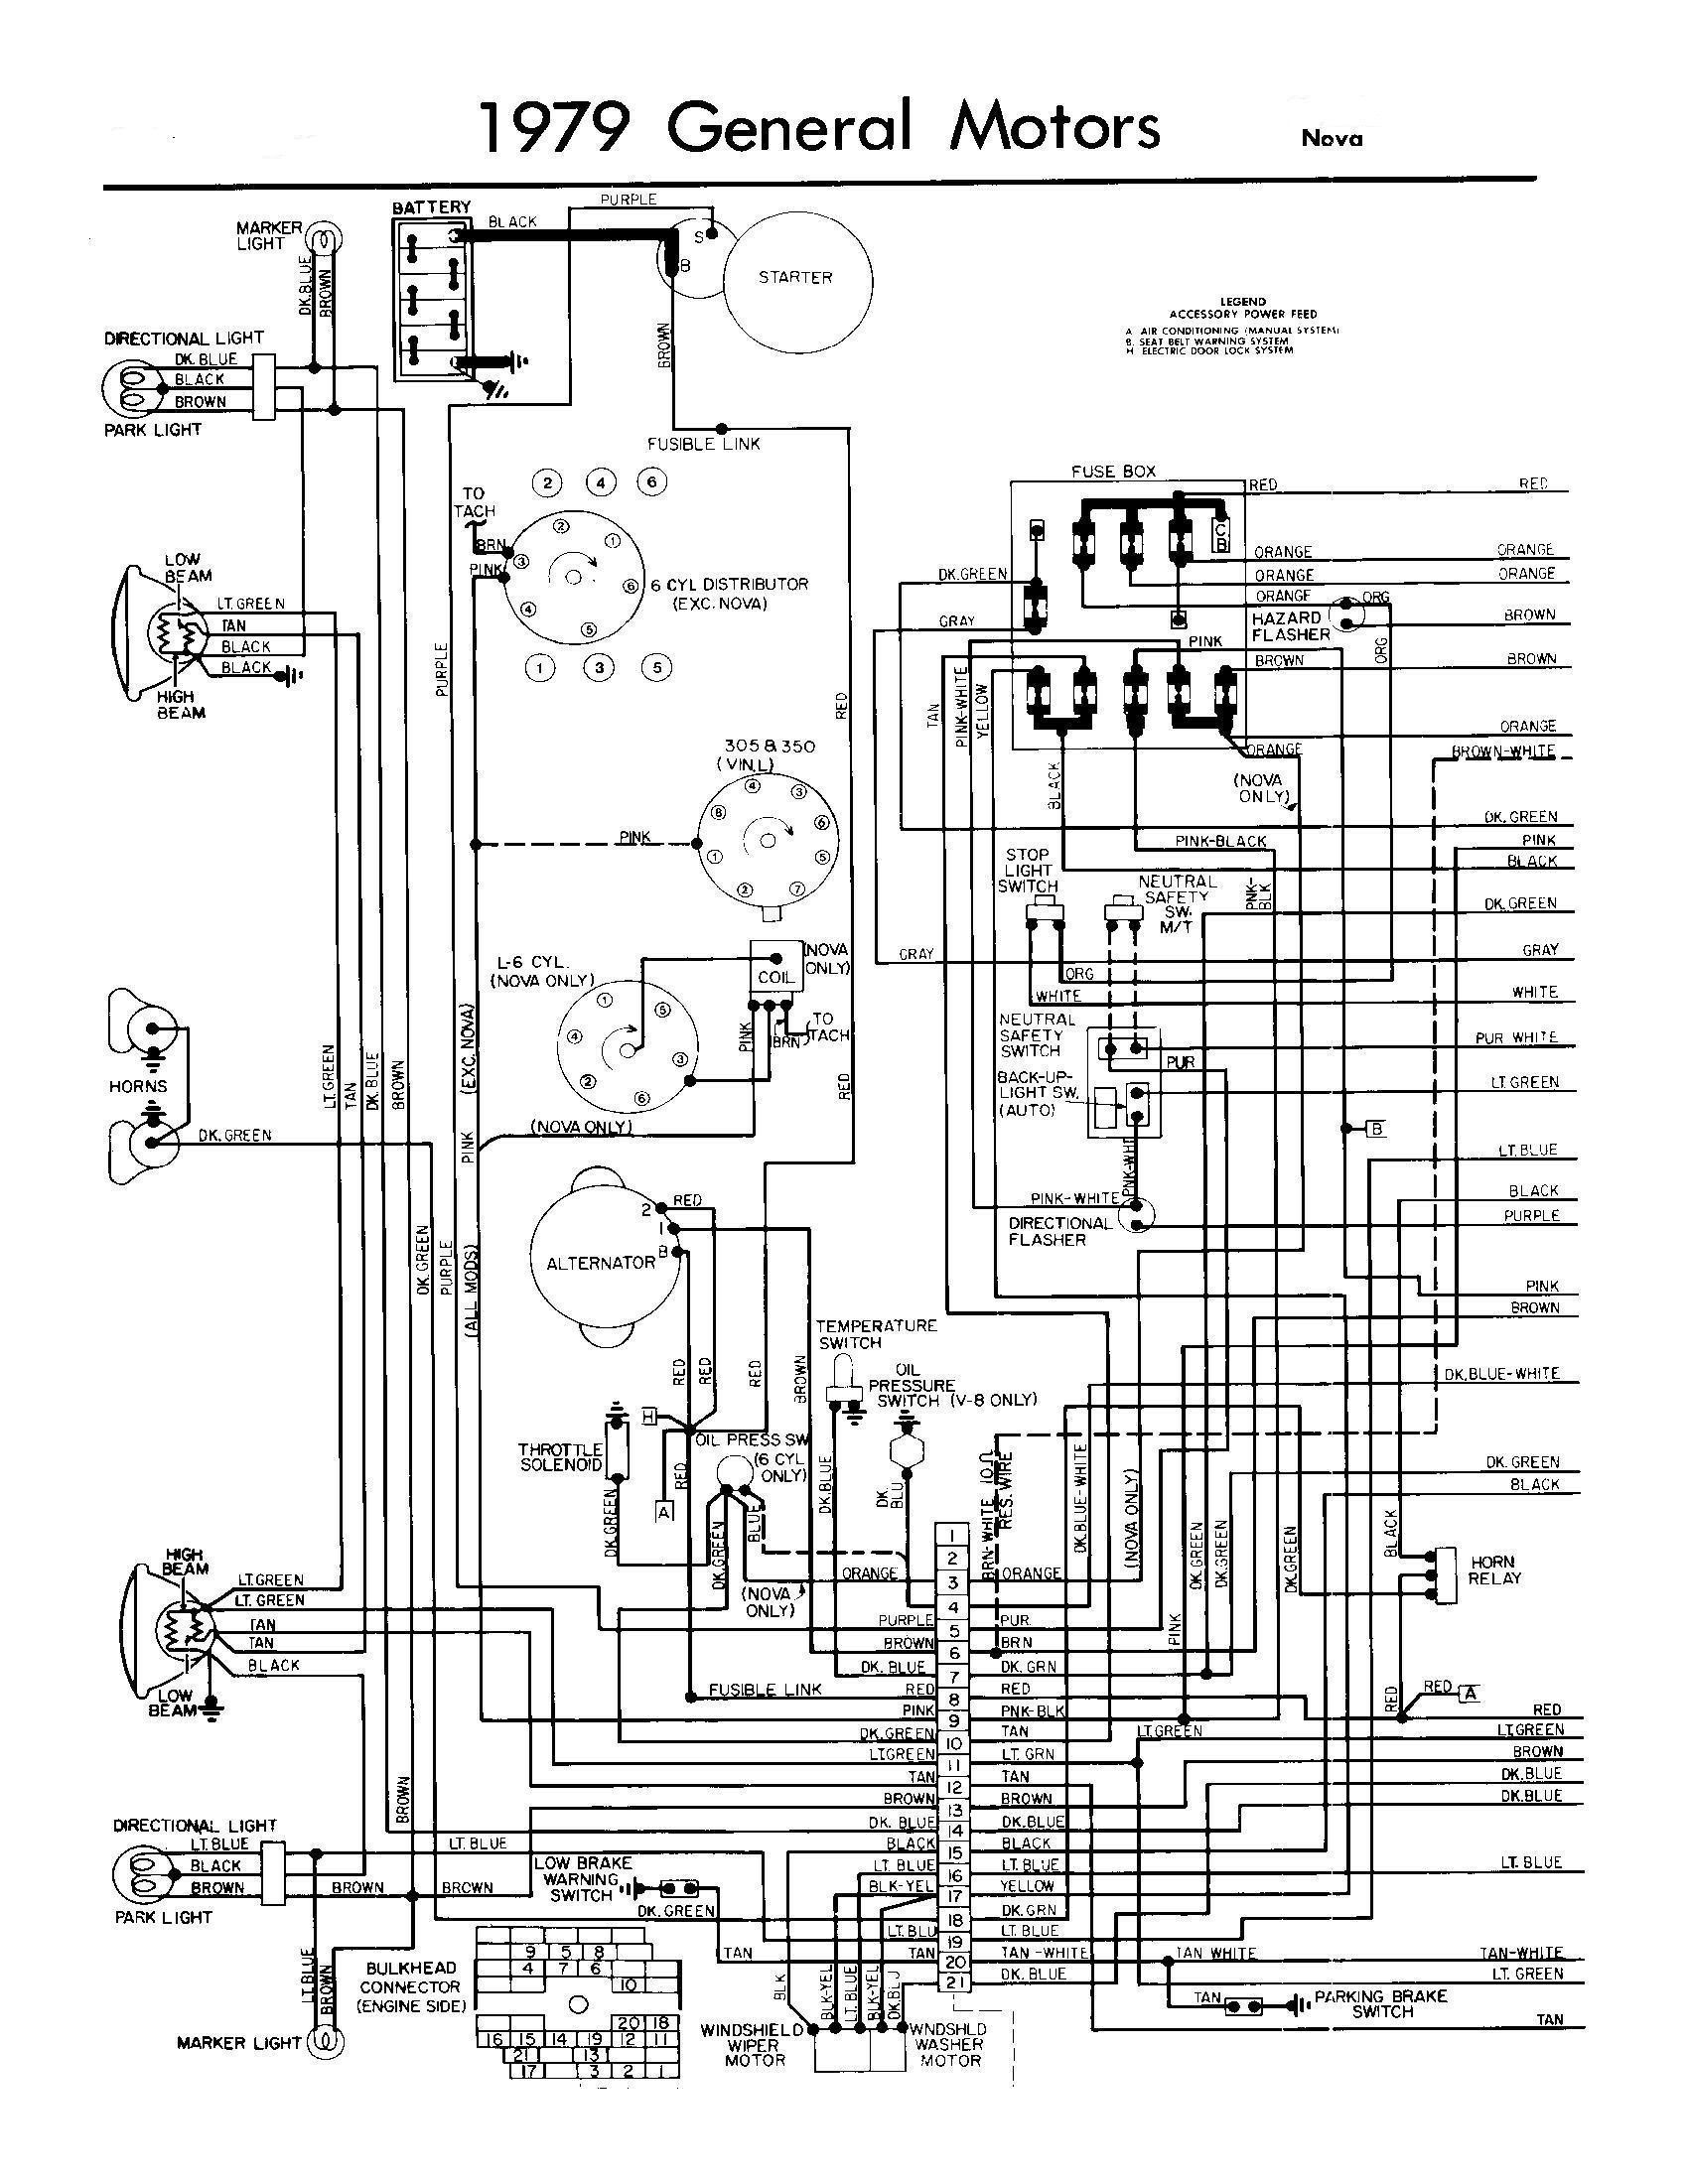 1971 Camaro Wiring Diagram - Electrical Wiring Diagrams •